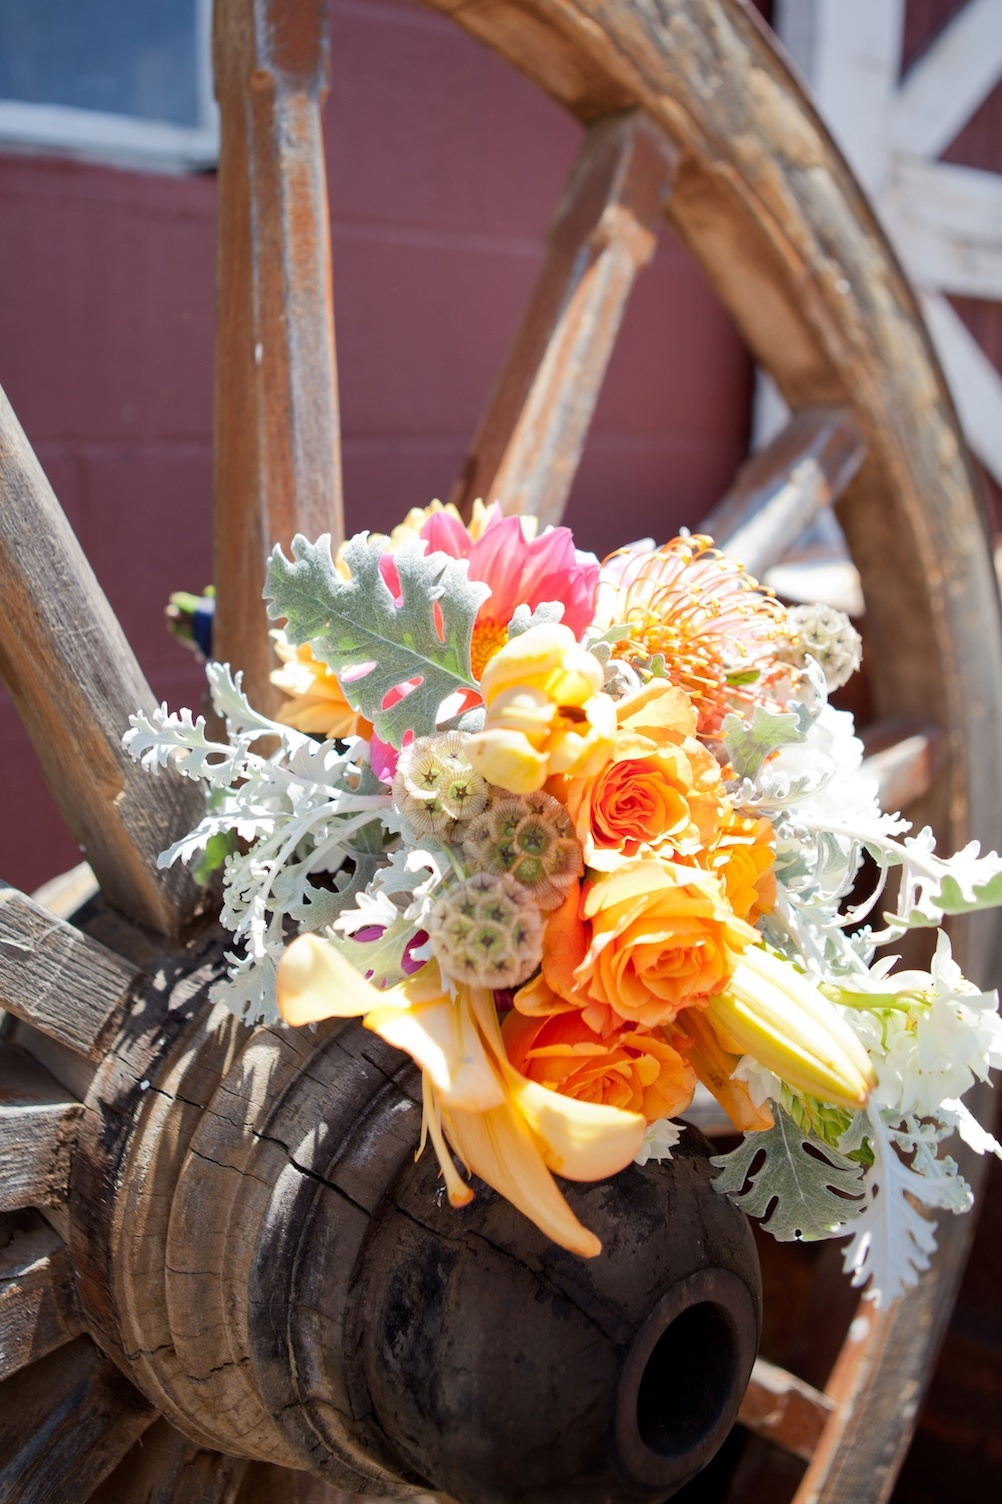 2-kentucky-derby-inspired-wedding-theme-bridal-shower-inspiration-barn-venue-romantic-bouquet.full